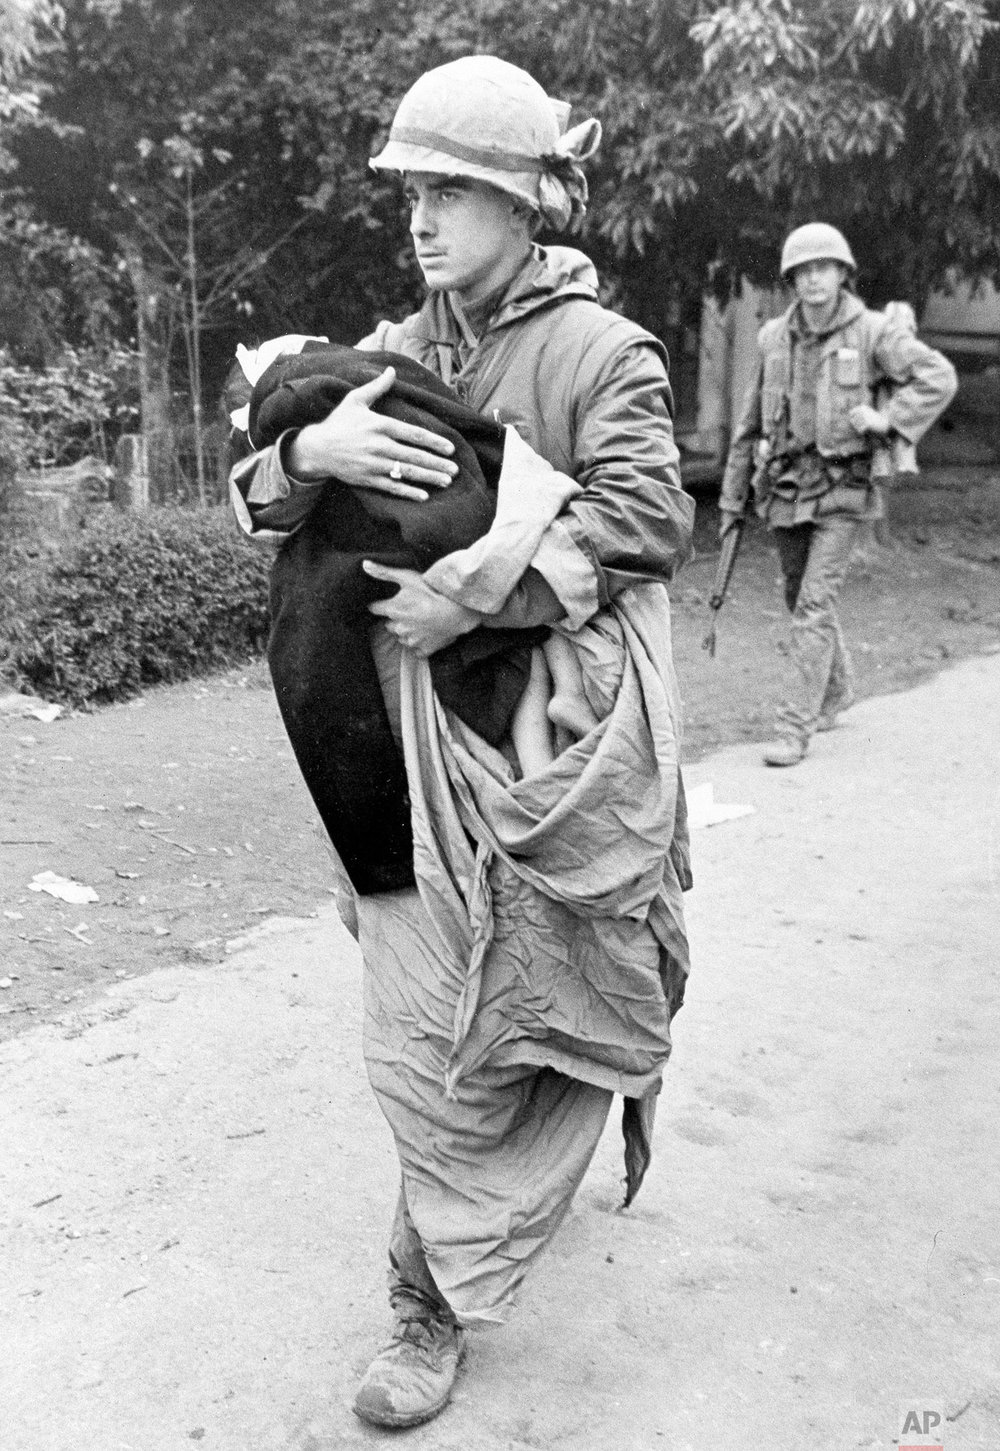 A U.S. Marine carries a blanket-wrapped wounded Vietnamese child from an aid station to an ambulance for evacuation from the Citadel in Hue, Feb. 17, 1968. The child wandered into Marine lines after he was wounded by American artillery fire directed at Red positions. (AP Photo)